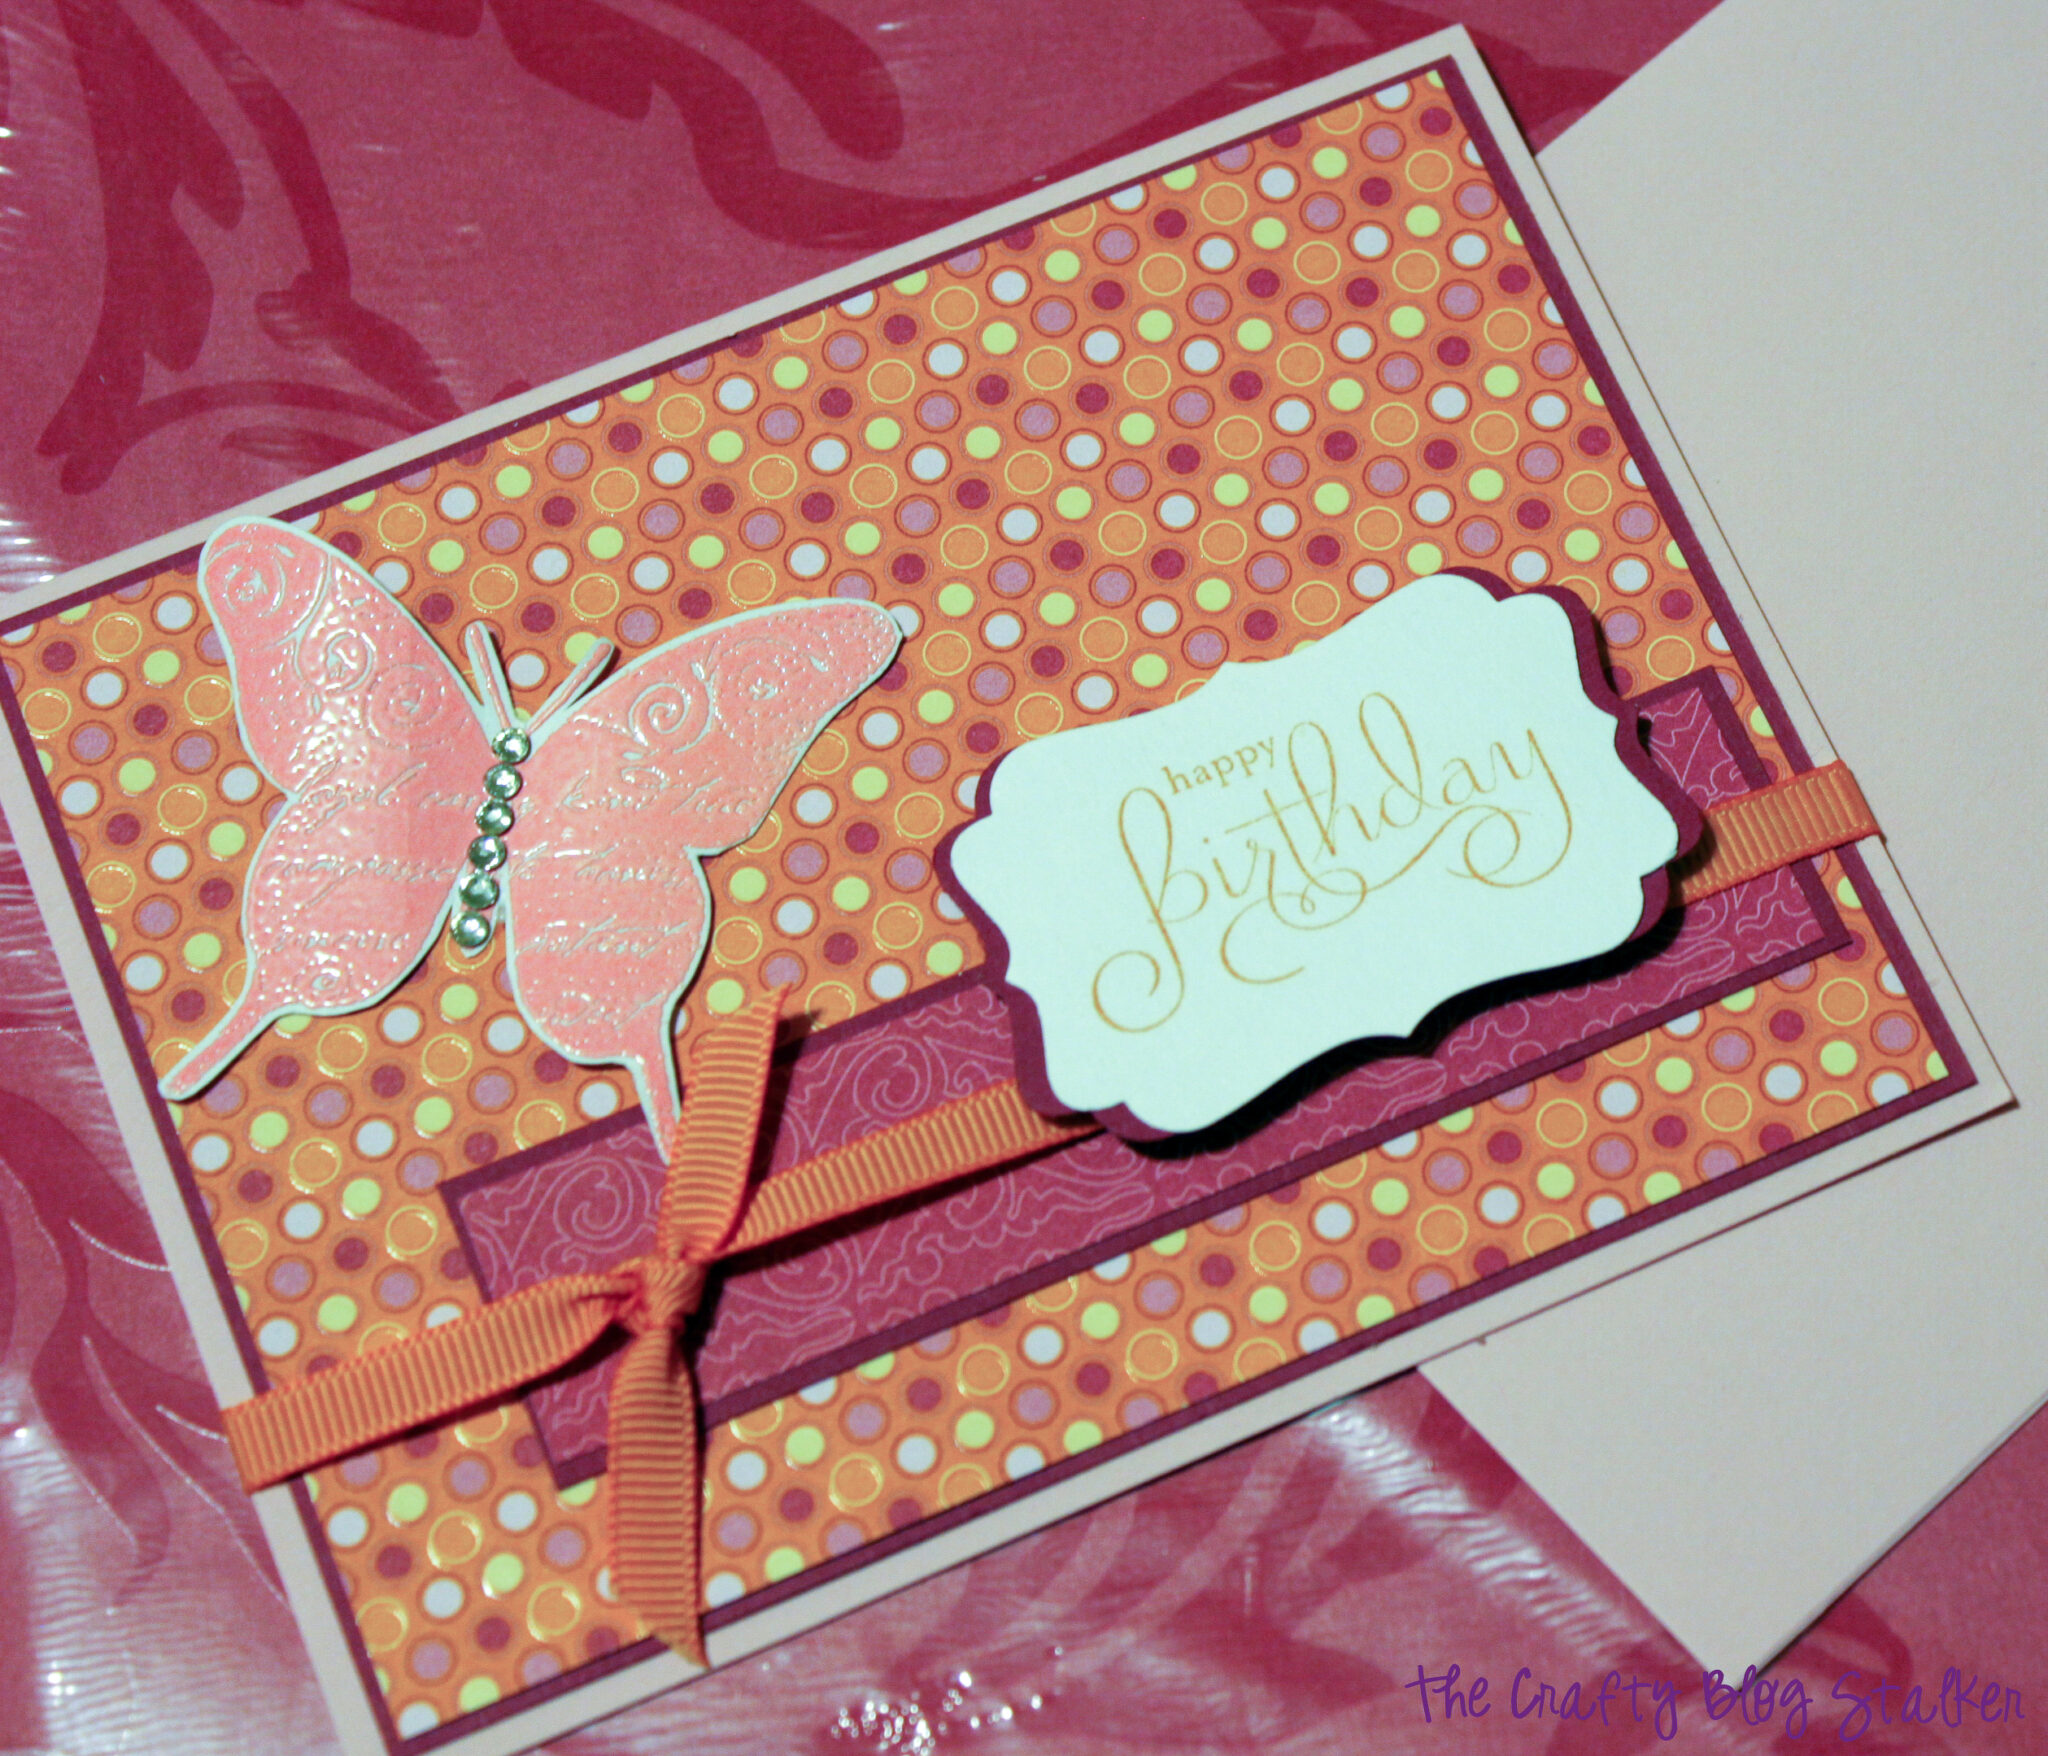 image of the finished handmade card with an embossed butterfly